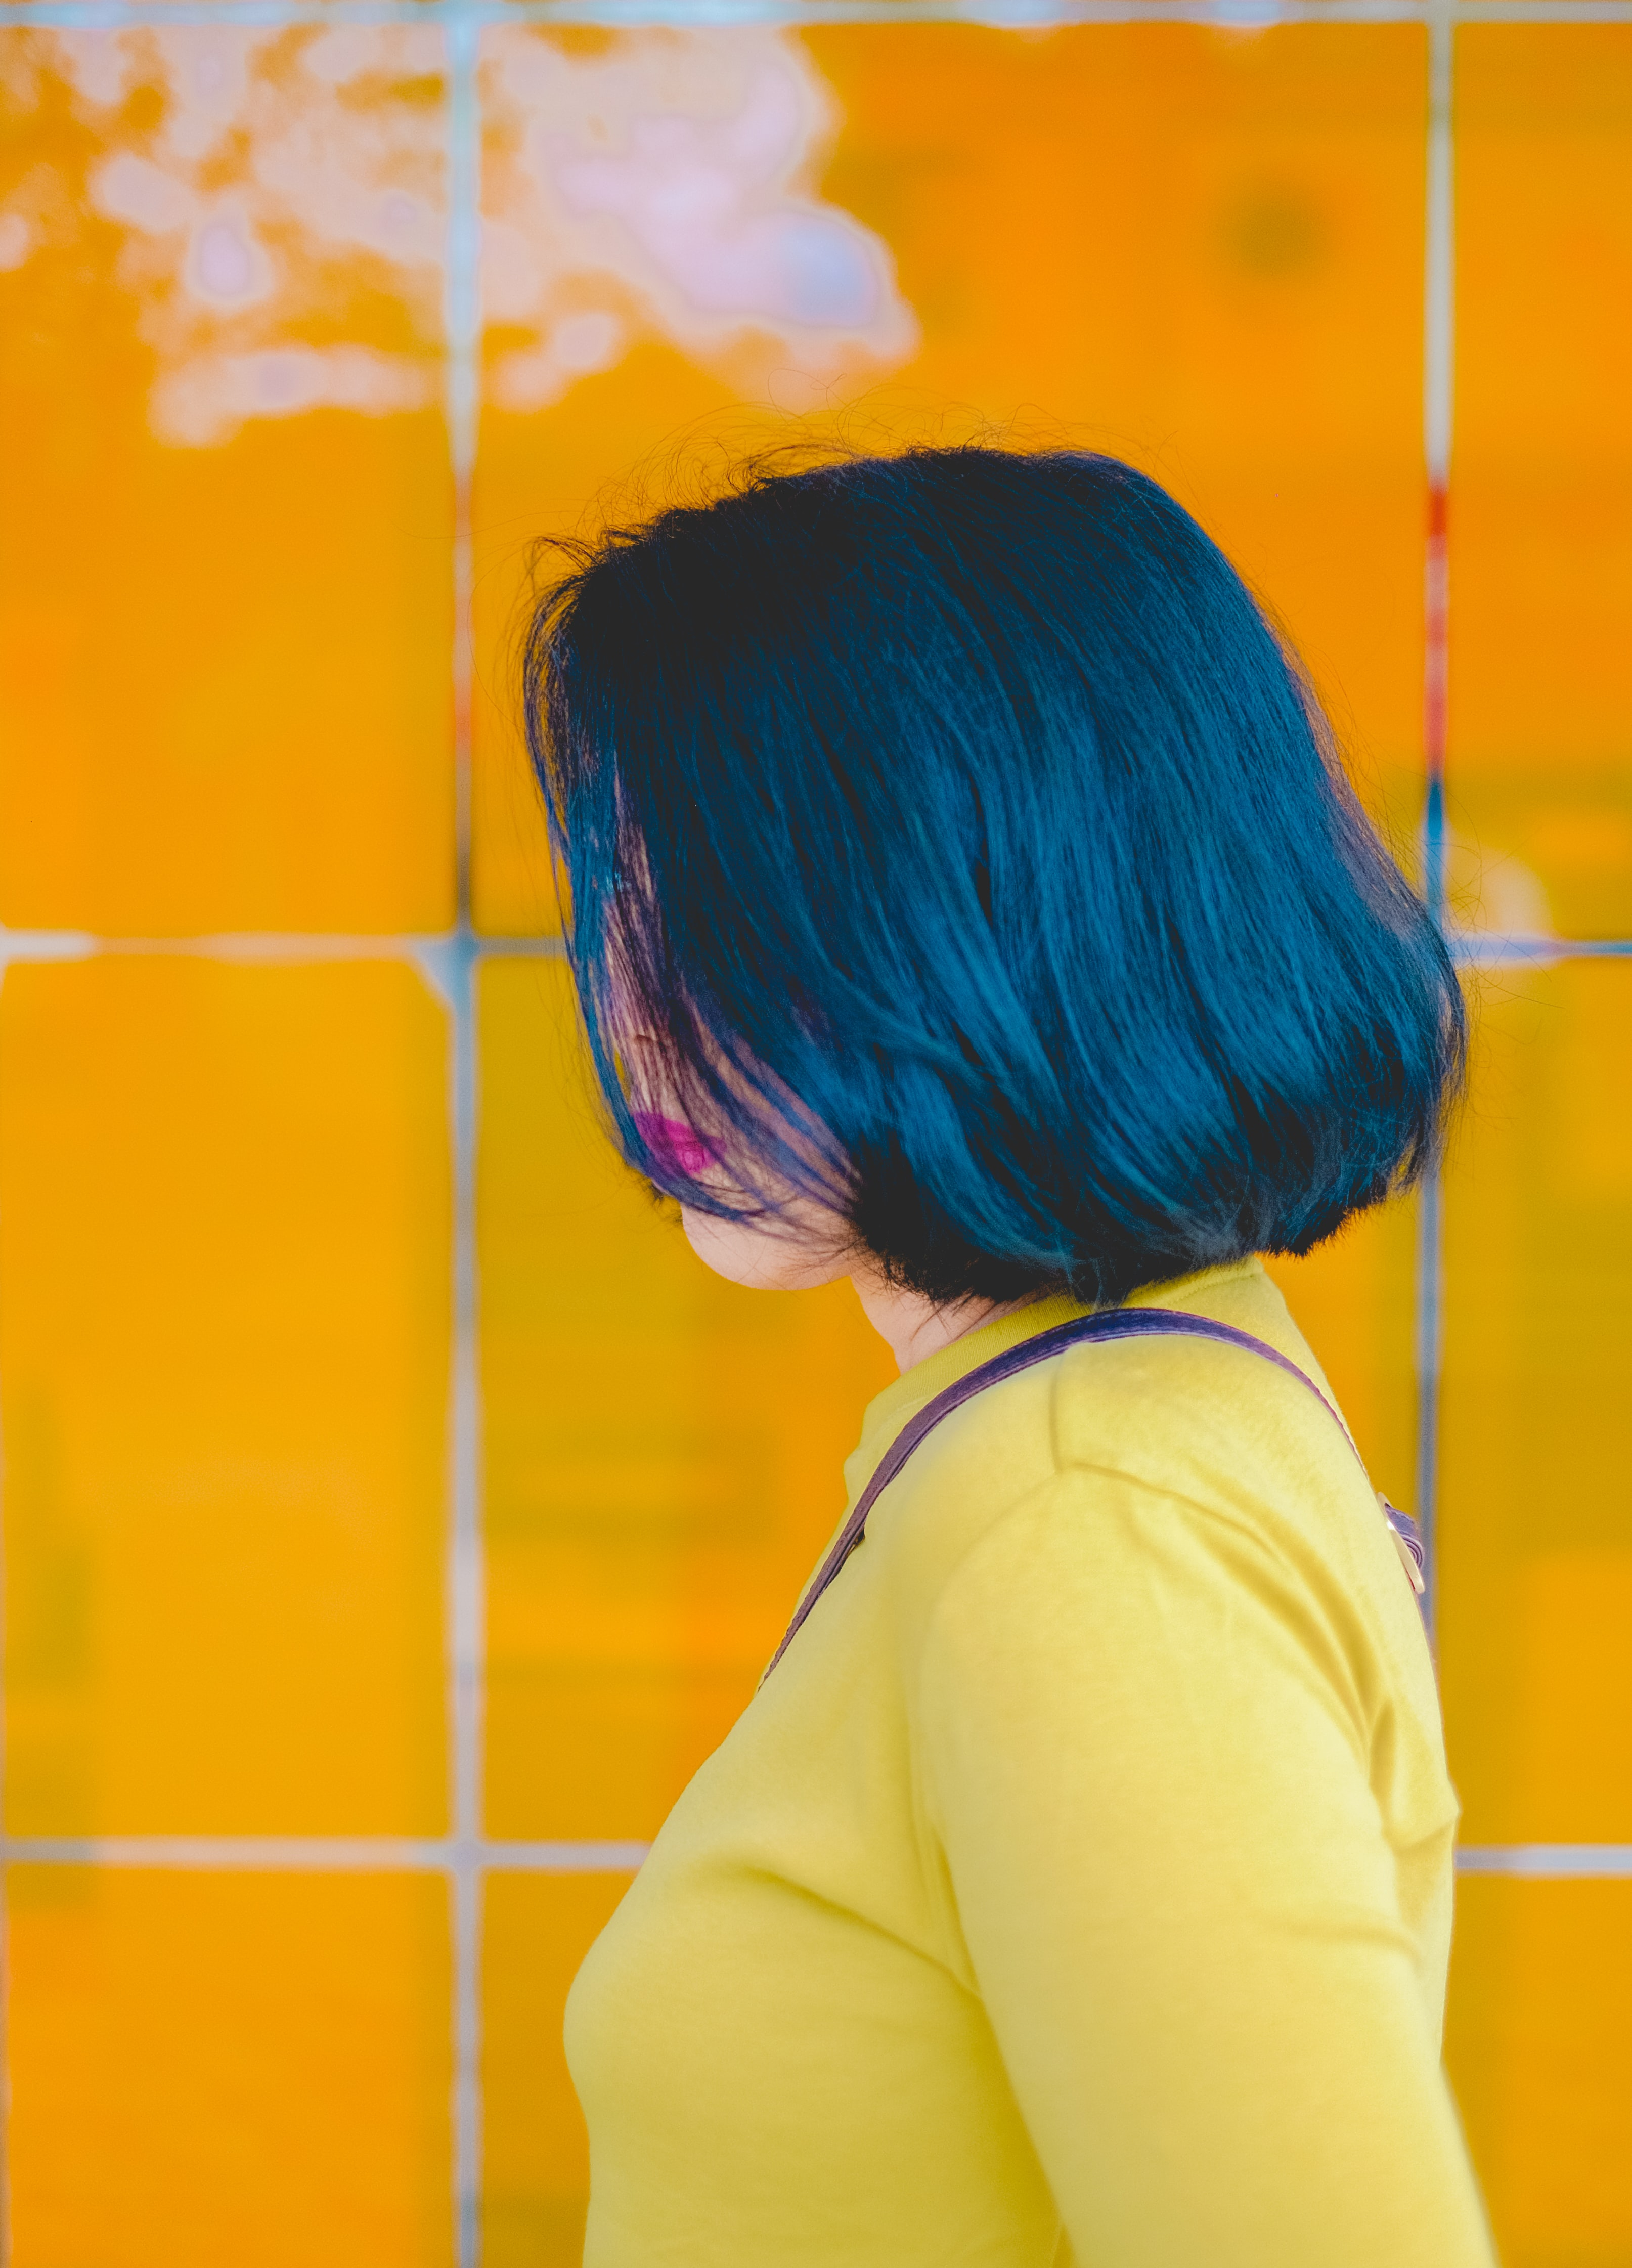 black haired woman in yellow long-sleeved top